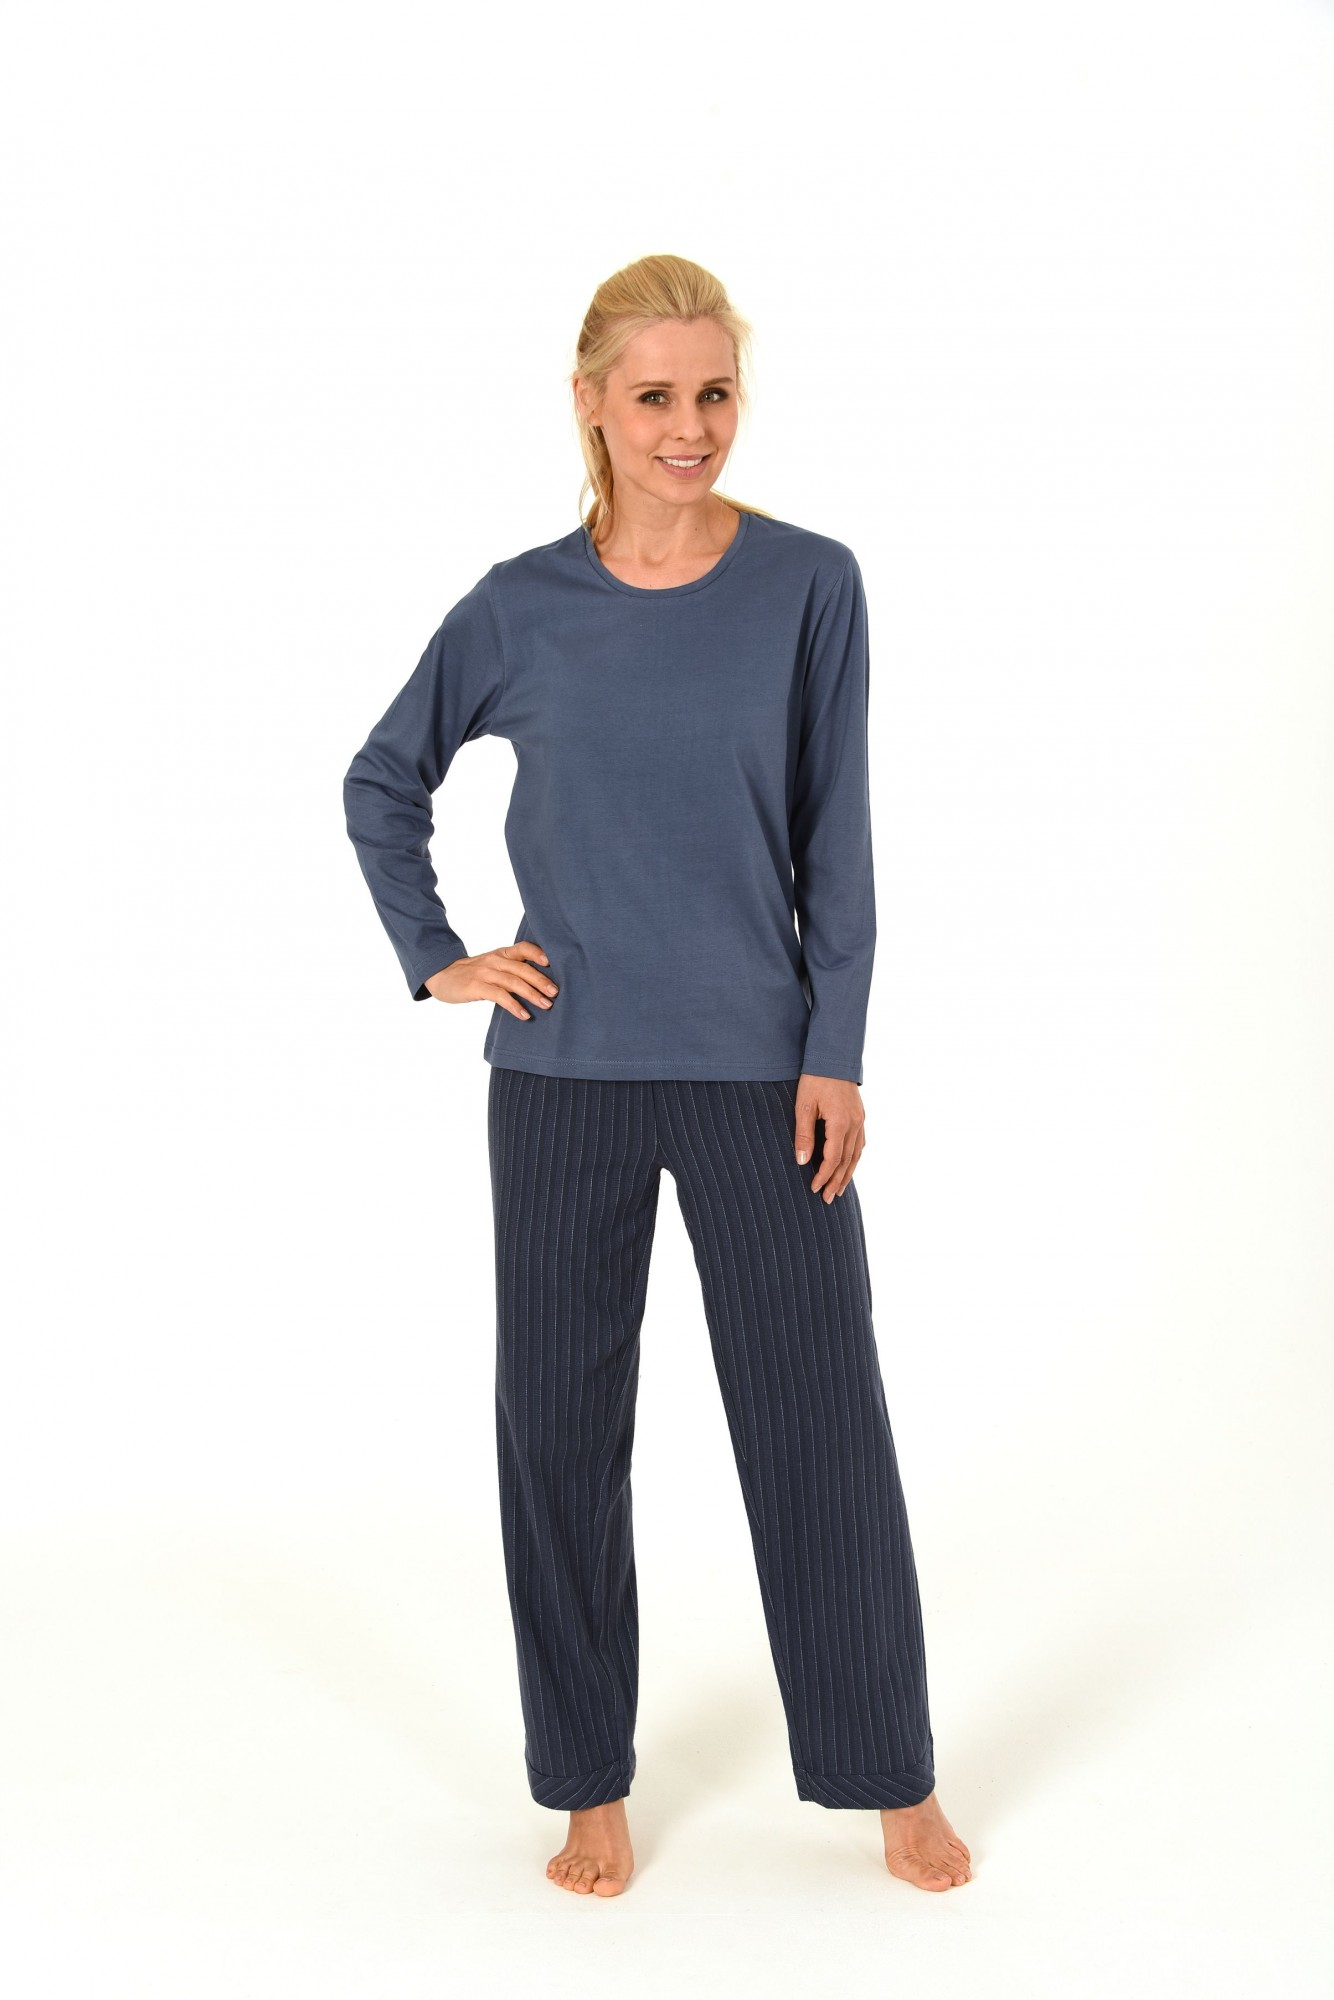 Damen Flanell Pyjama Mix & Match – Hose Flanell Oberteil Single Jersey 55843  001